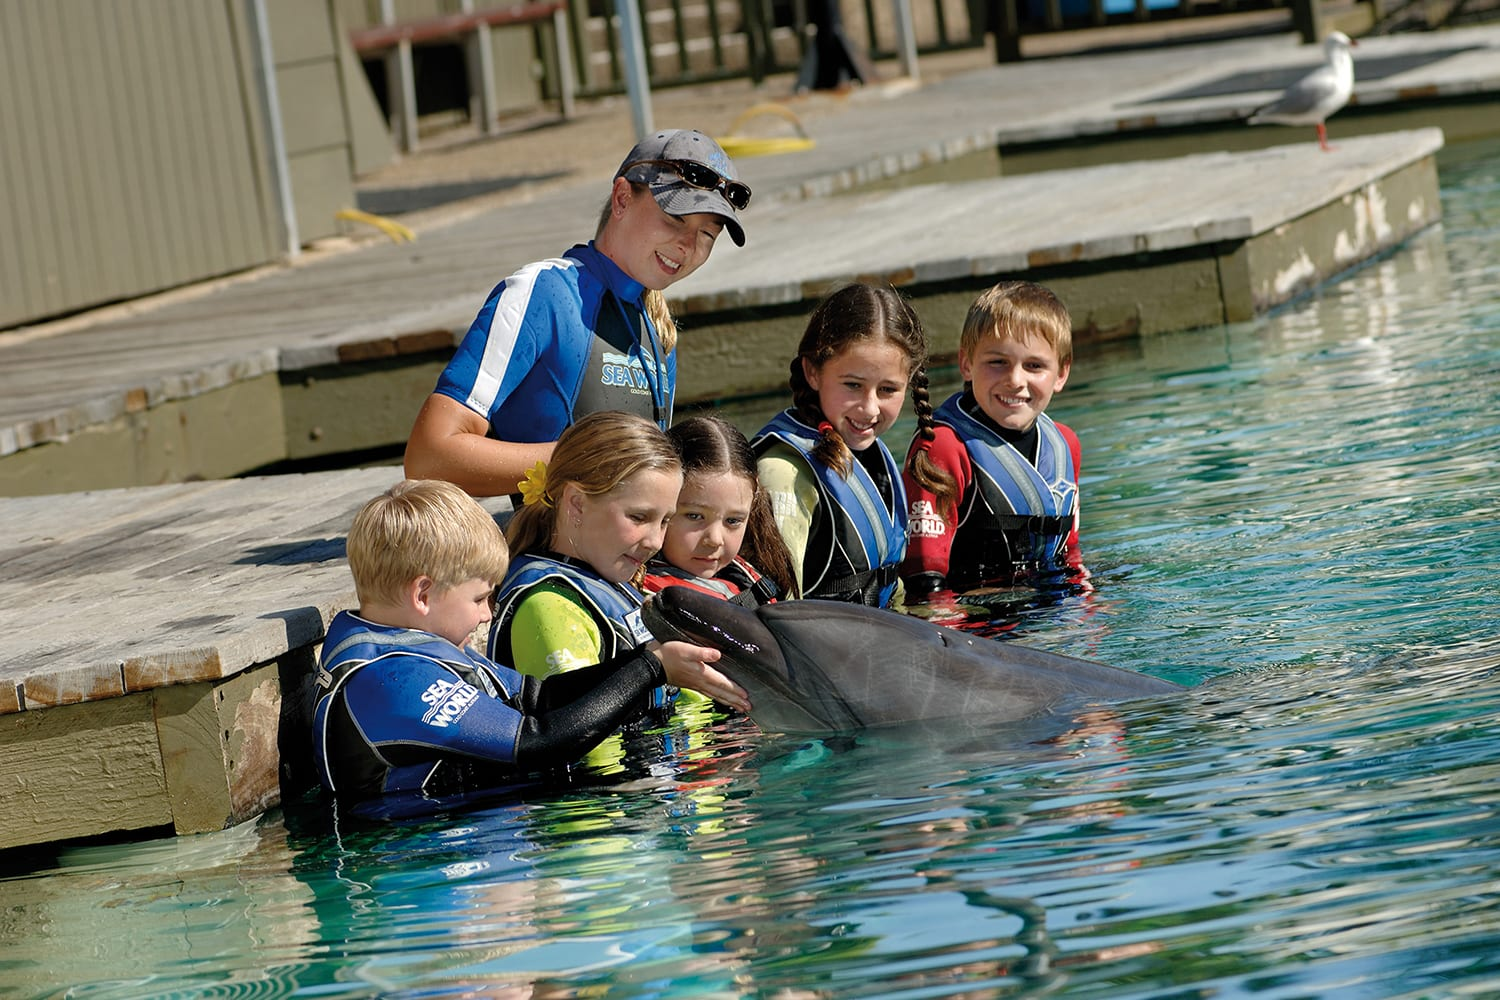 Dolphin Aqua Adventure at Sea World for Child